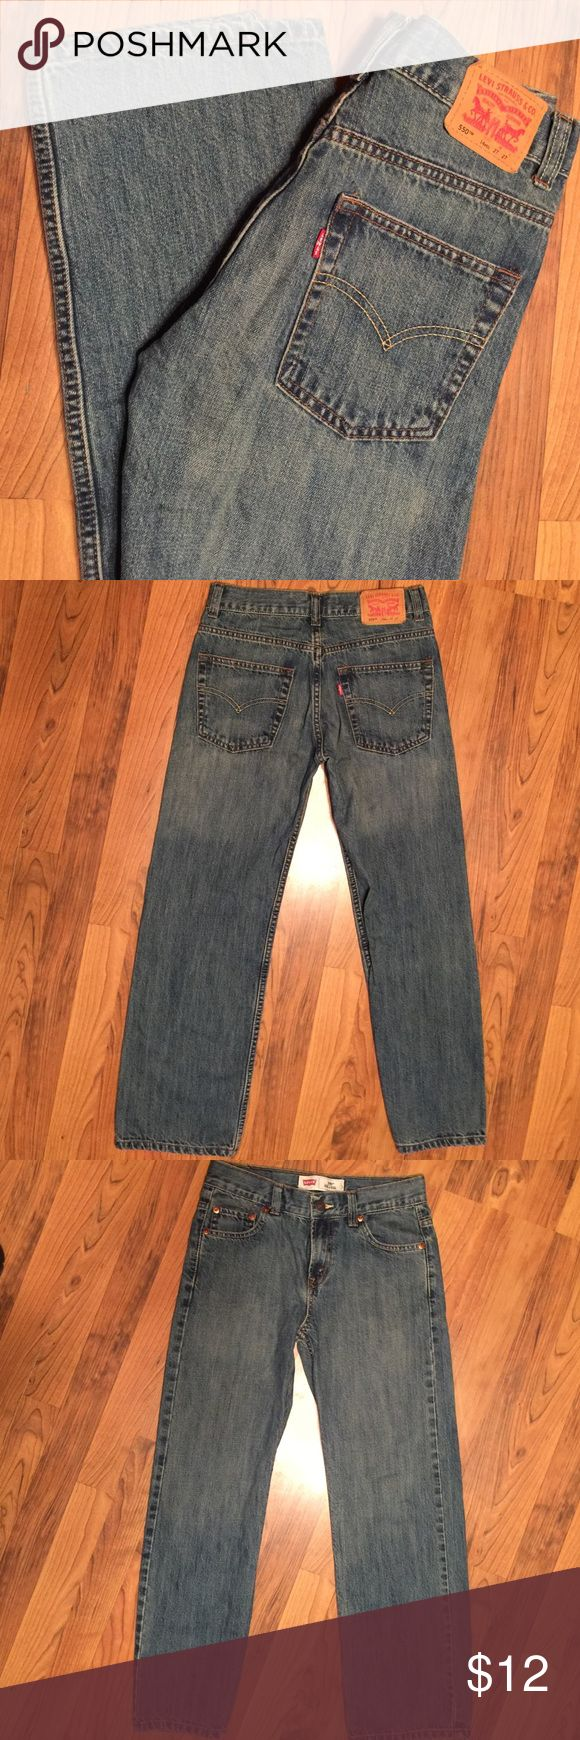 "Levi's 550 Relaxed Fit Jeans. Size 14R, 27""W, 26L Levi's 550 Relaxed Jeans.  Size:  14 REG,  27"" Waist, 26"" Long.  Good Preowned Condition.  Uniform Fading That Looks Great & Levi's Is Known For. Levi's Bottoms Jeans"